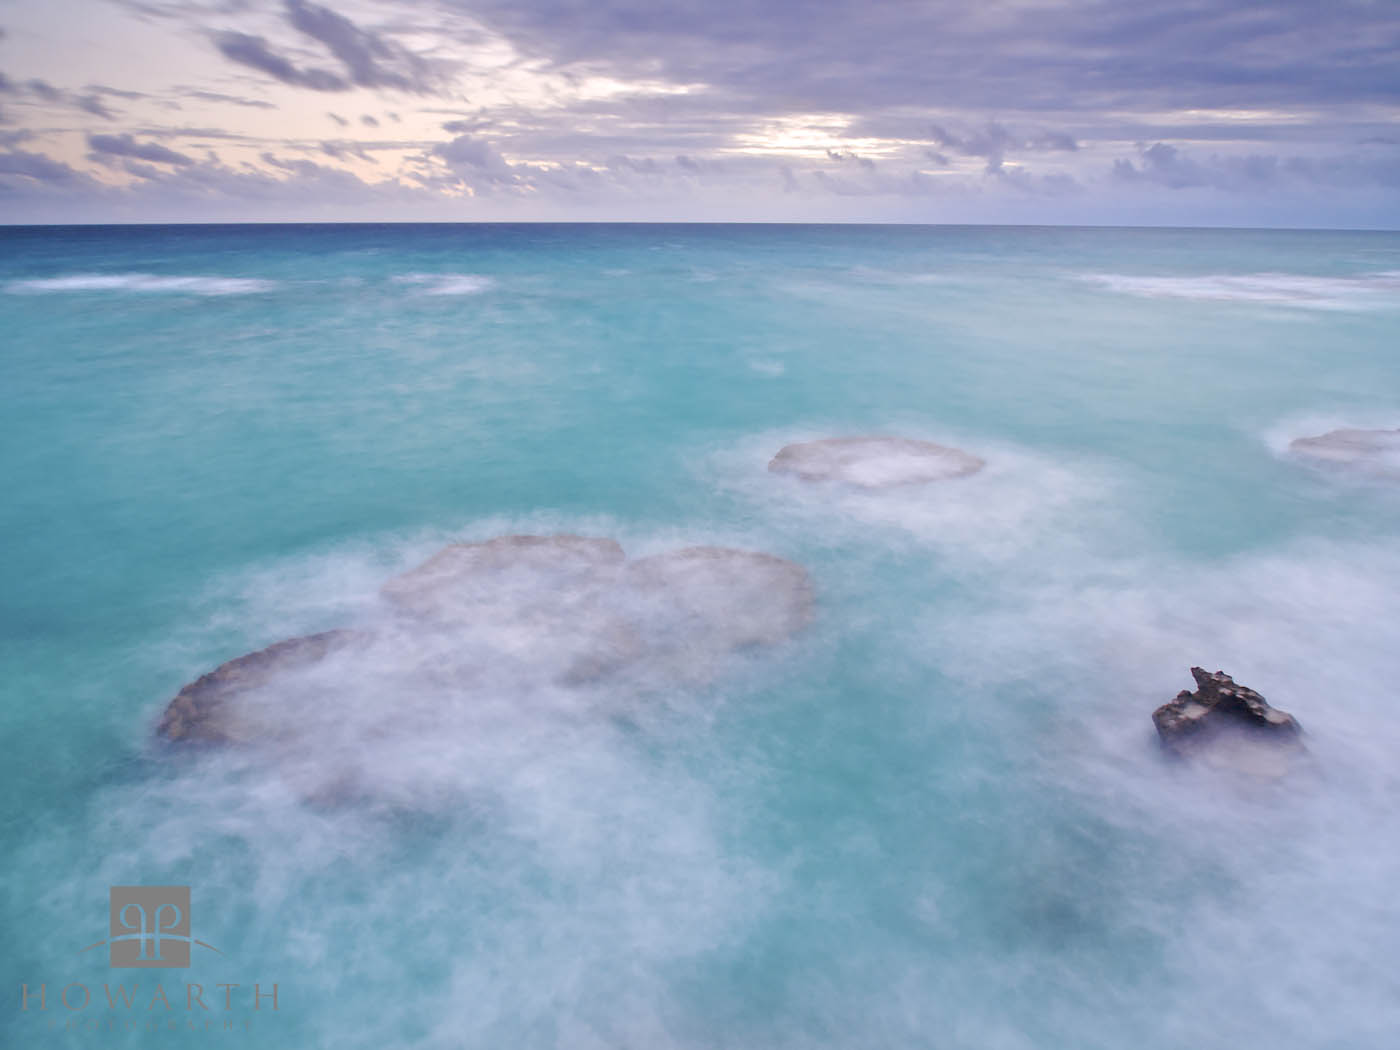 A long exposure smoothes the turbulent water covering the reef